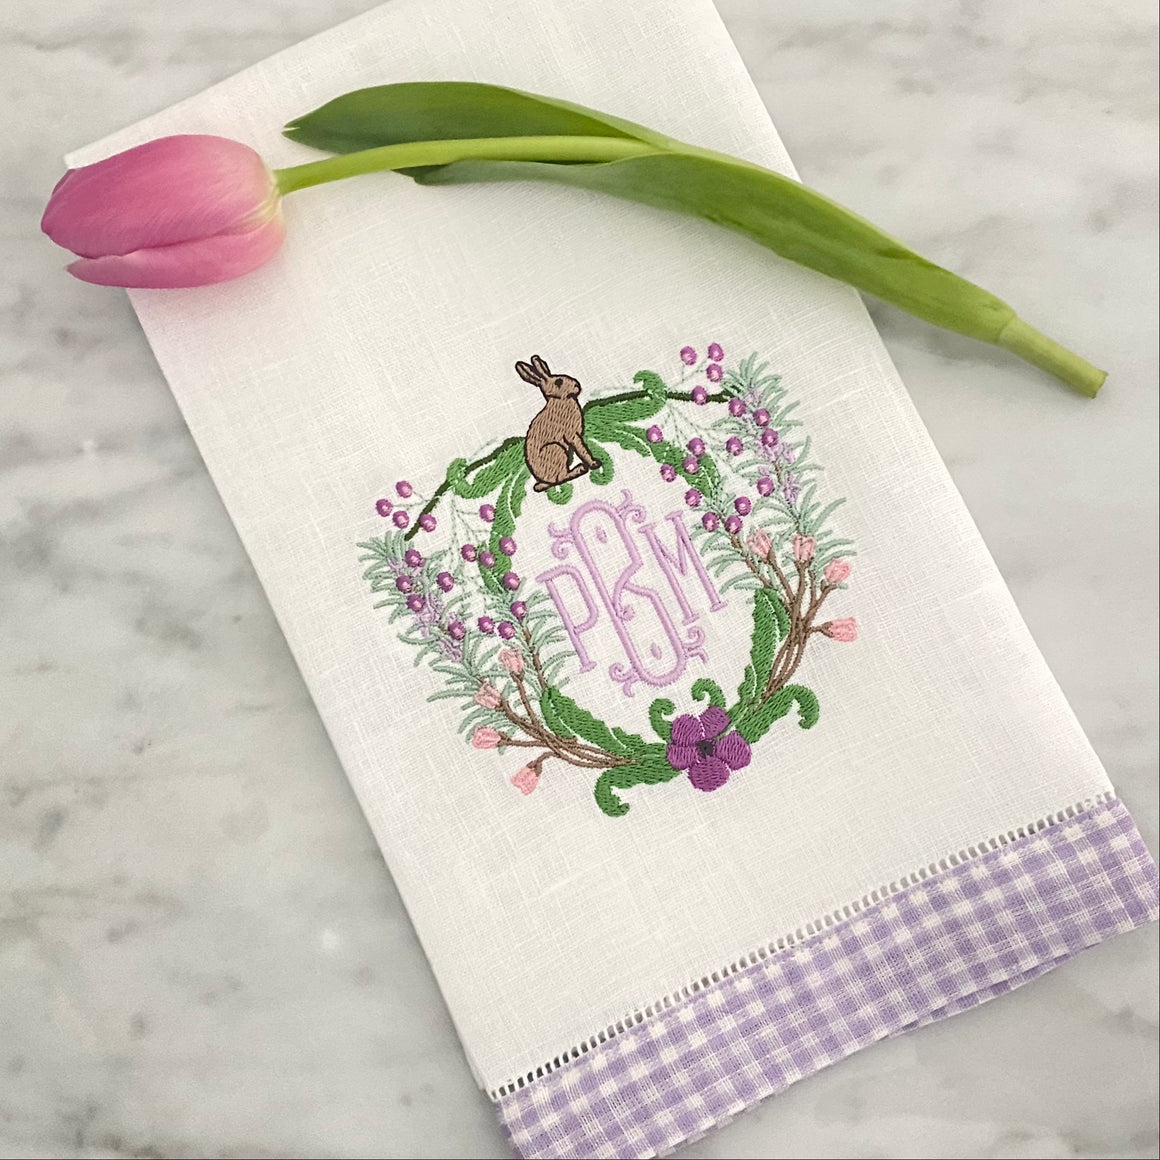 Spring Bunny Crest Embroidery Design